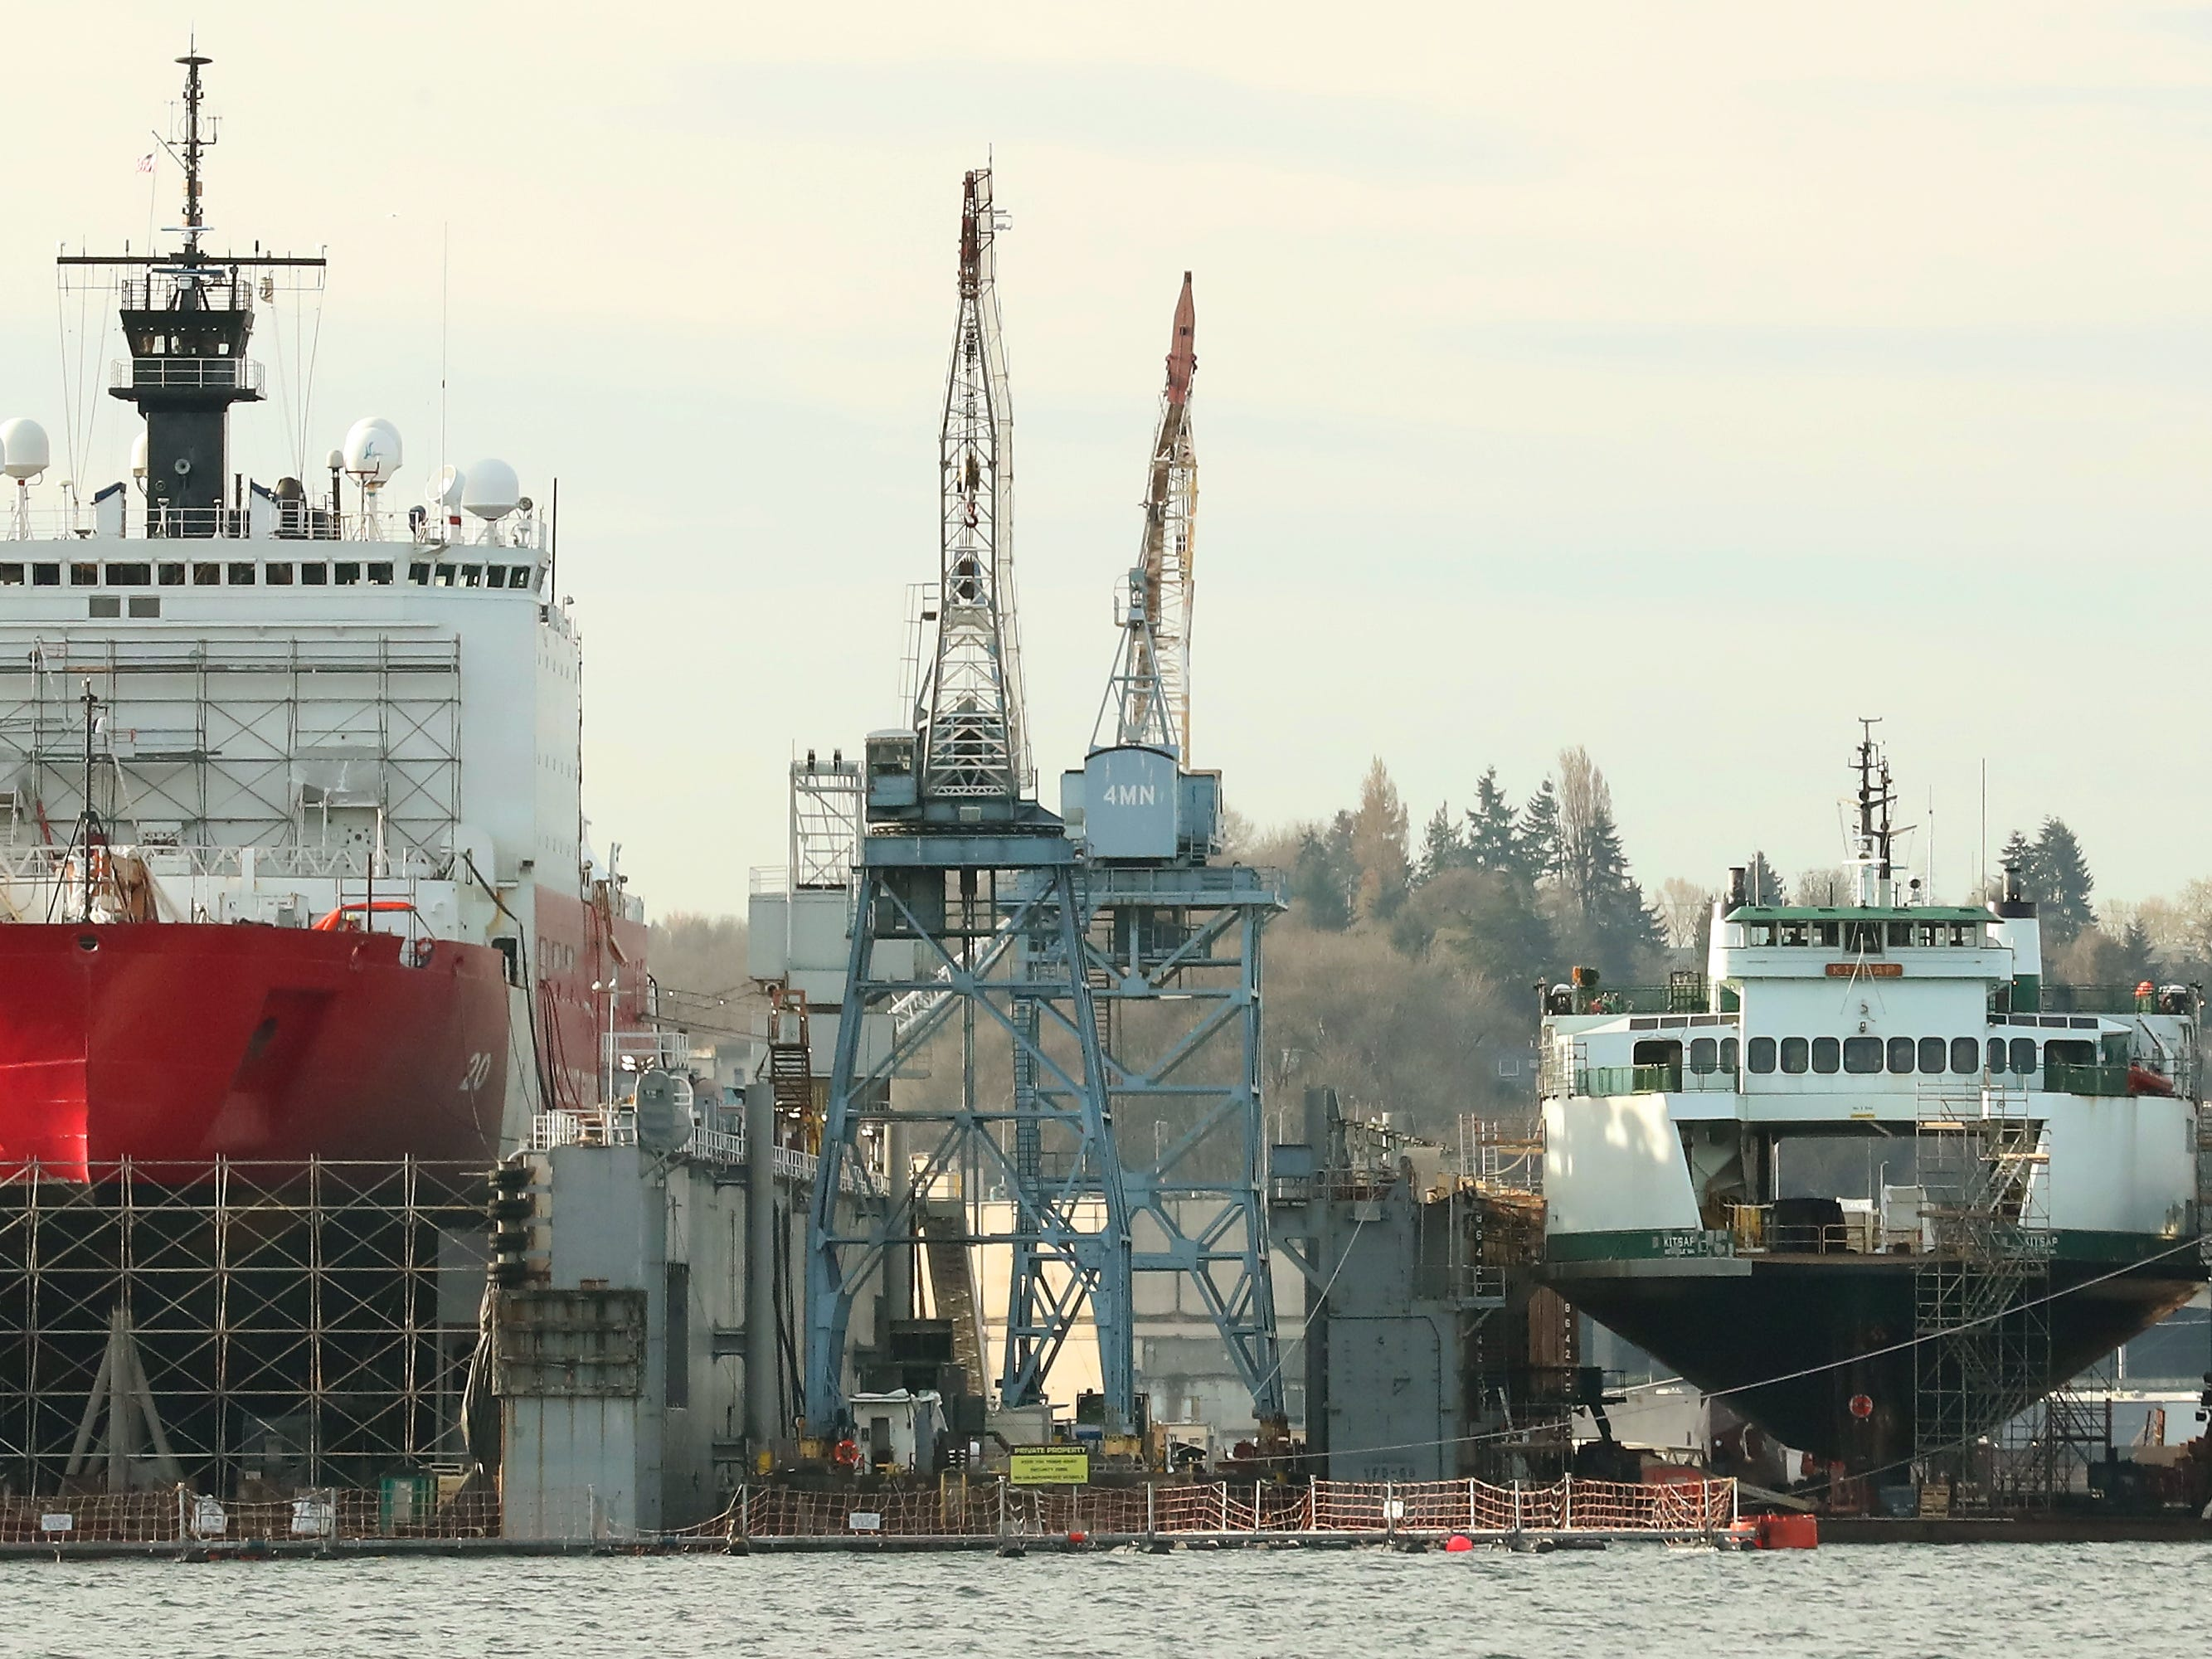 The USCGC Healy and the Washington State Ferry Kitsap sit side by side in the Vigor dry docks in Seattle on Monday, March 25, 2019.